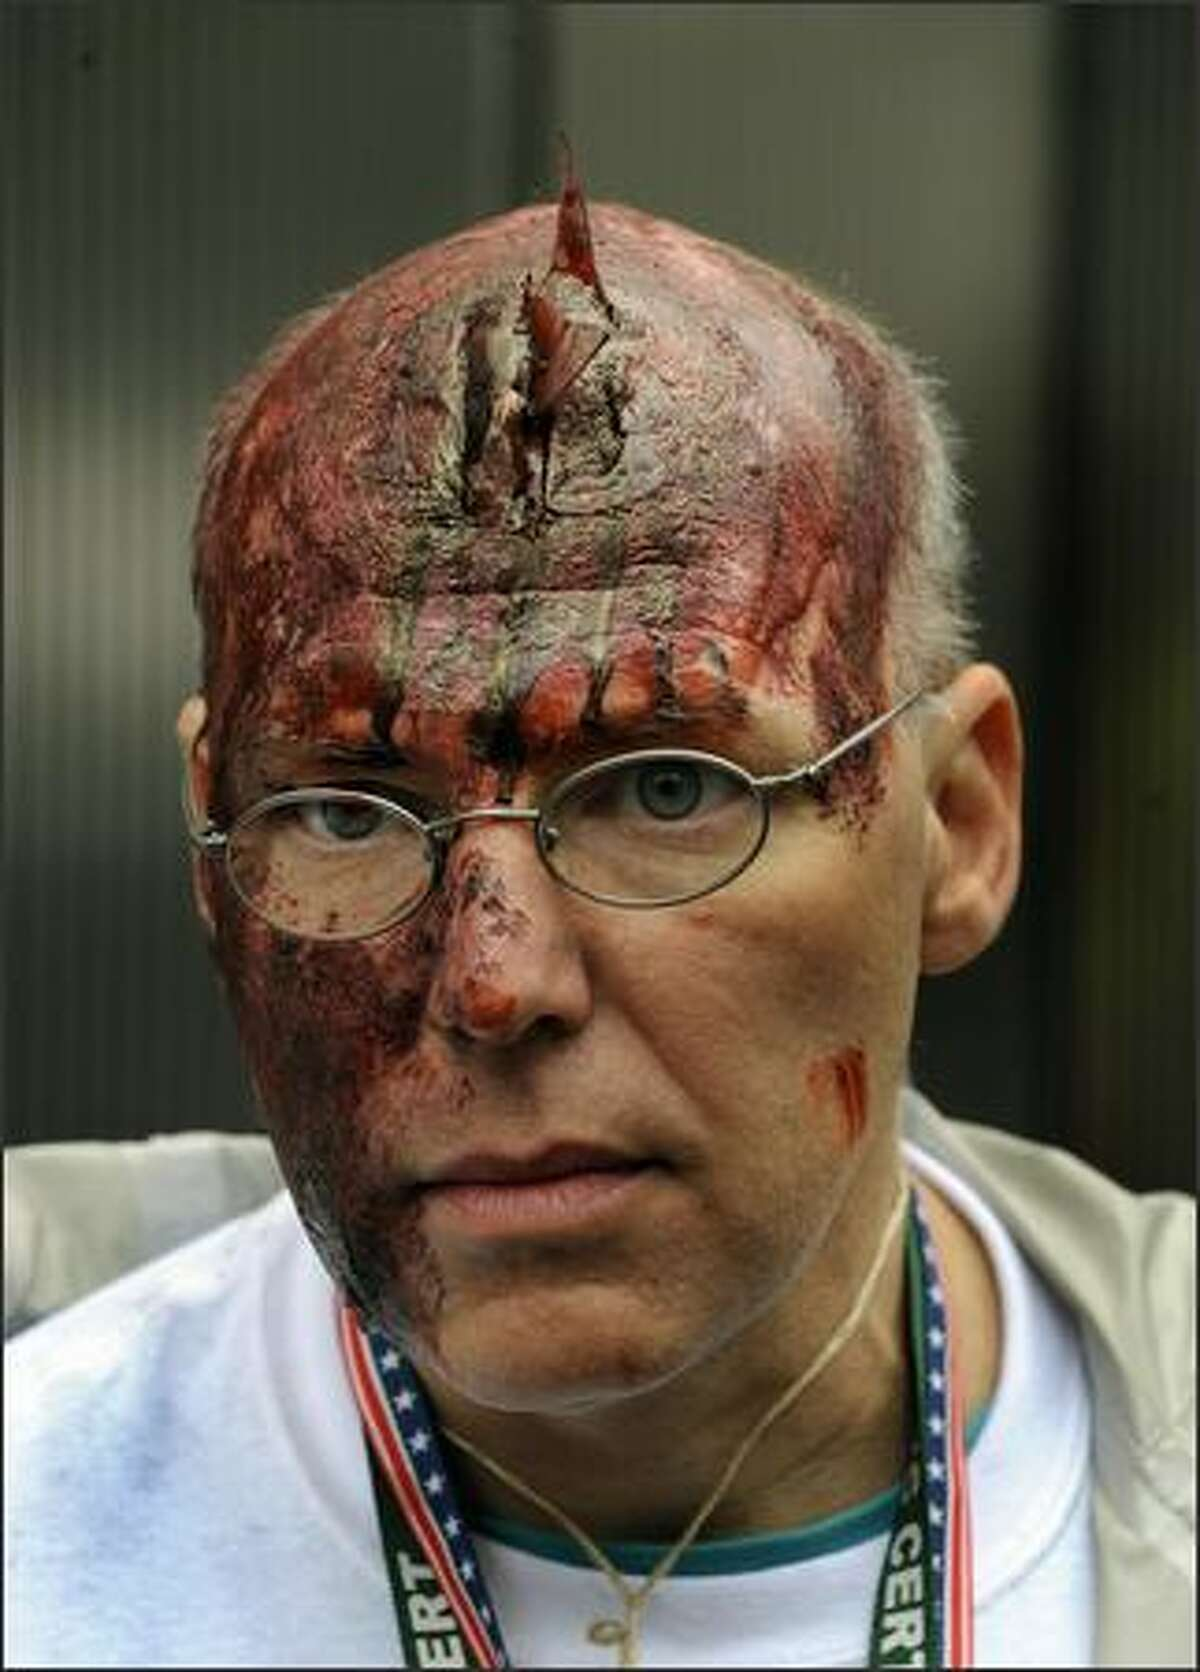 A volunter victim with a fake shard of glass in his head is seen during Operation Safe PATH 2009 Sunday at the PATH station at the World Trade Center. Hundreds of firefighters and police swarmed Ground Zero Sunday, the site where the World Trade Center once stood, in the largest security exercise here since the Sept. 11, 2001 attacks. As part of an elaborate dress rehearsal for a possible future terror strike, rescue workers exploded simulated bombs in a commuter train tunnel linking Manhattan to New Jersey burrowed beneath the Hudson River.